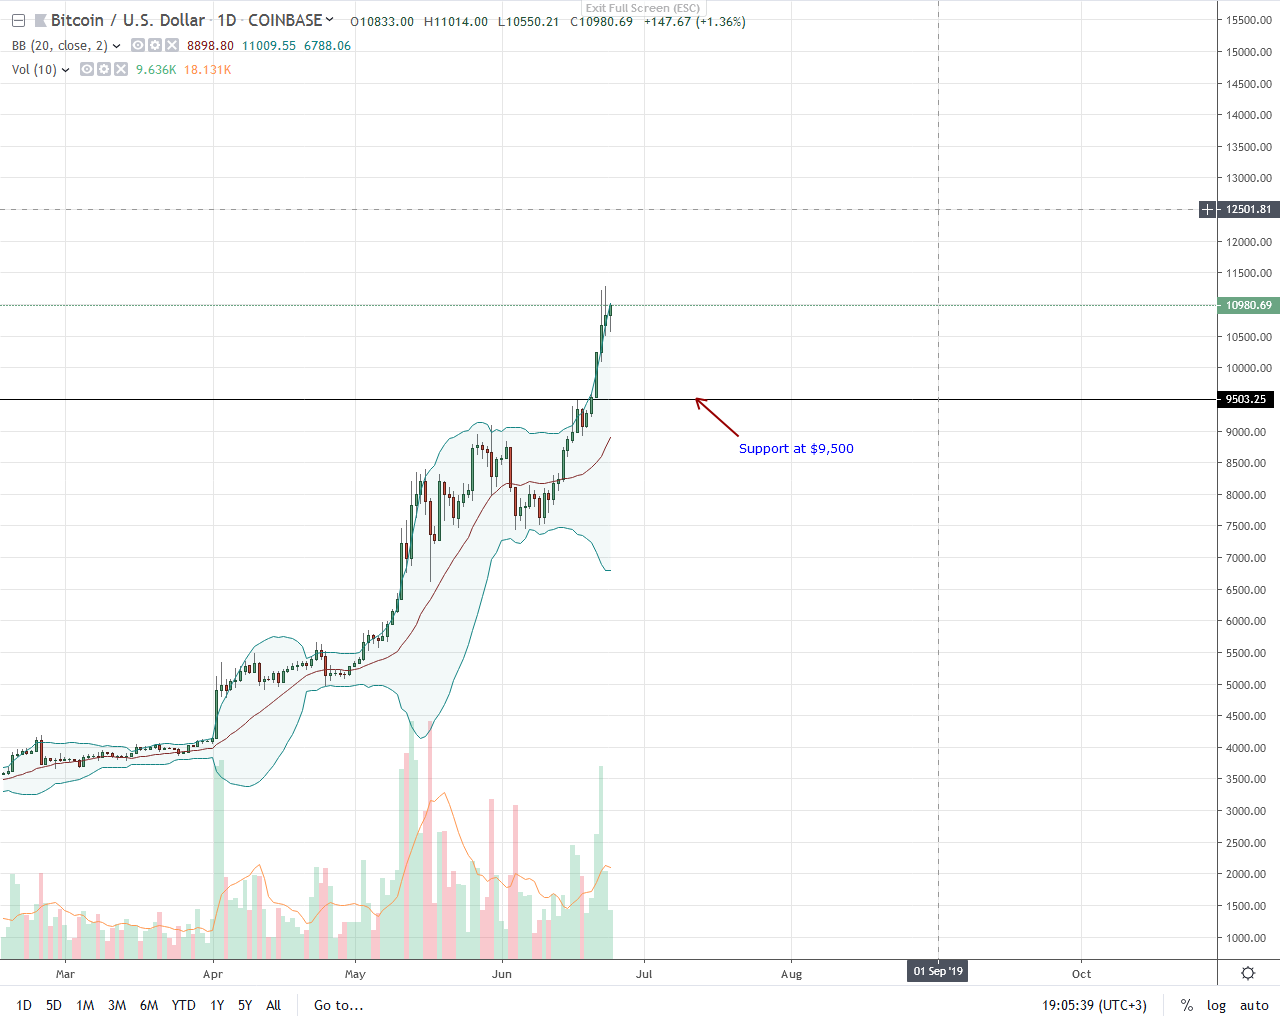 Bitcoin (BTC) At 2019 Highs, Is It Because of The FED's Dovish Stance?